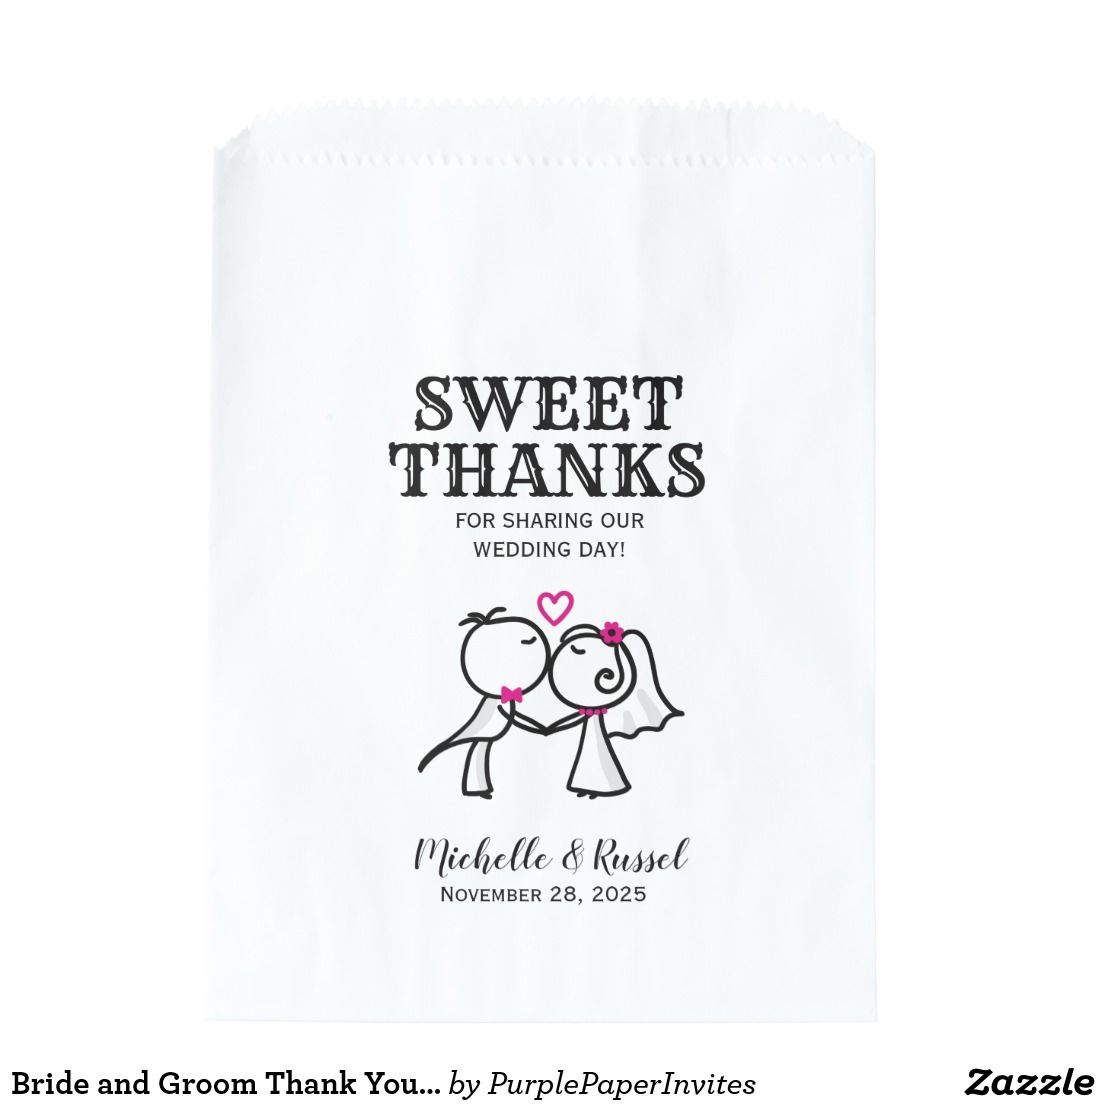 Bride and Groom Thank You Wedding Favor Candy Bag | Weddings ...